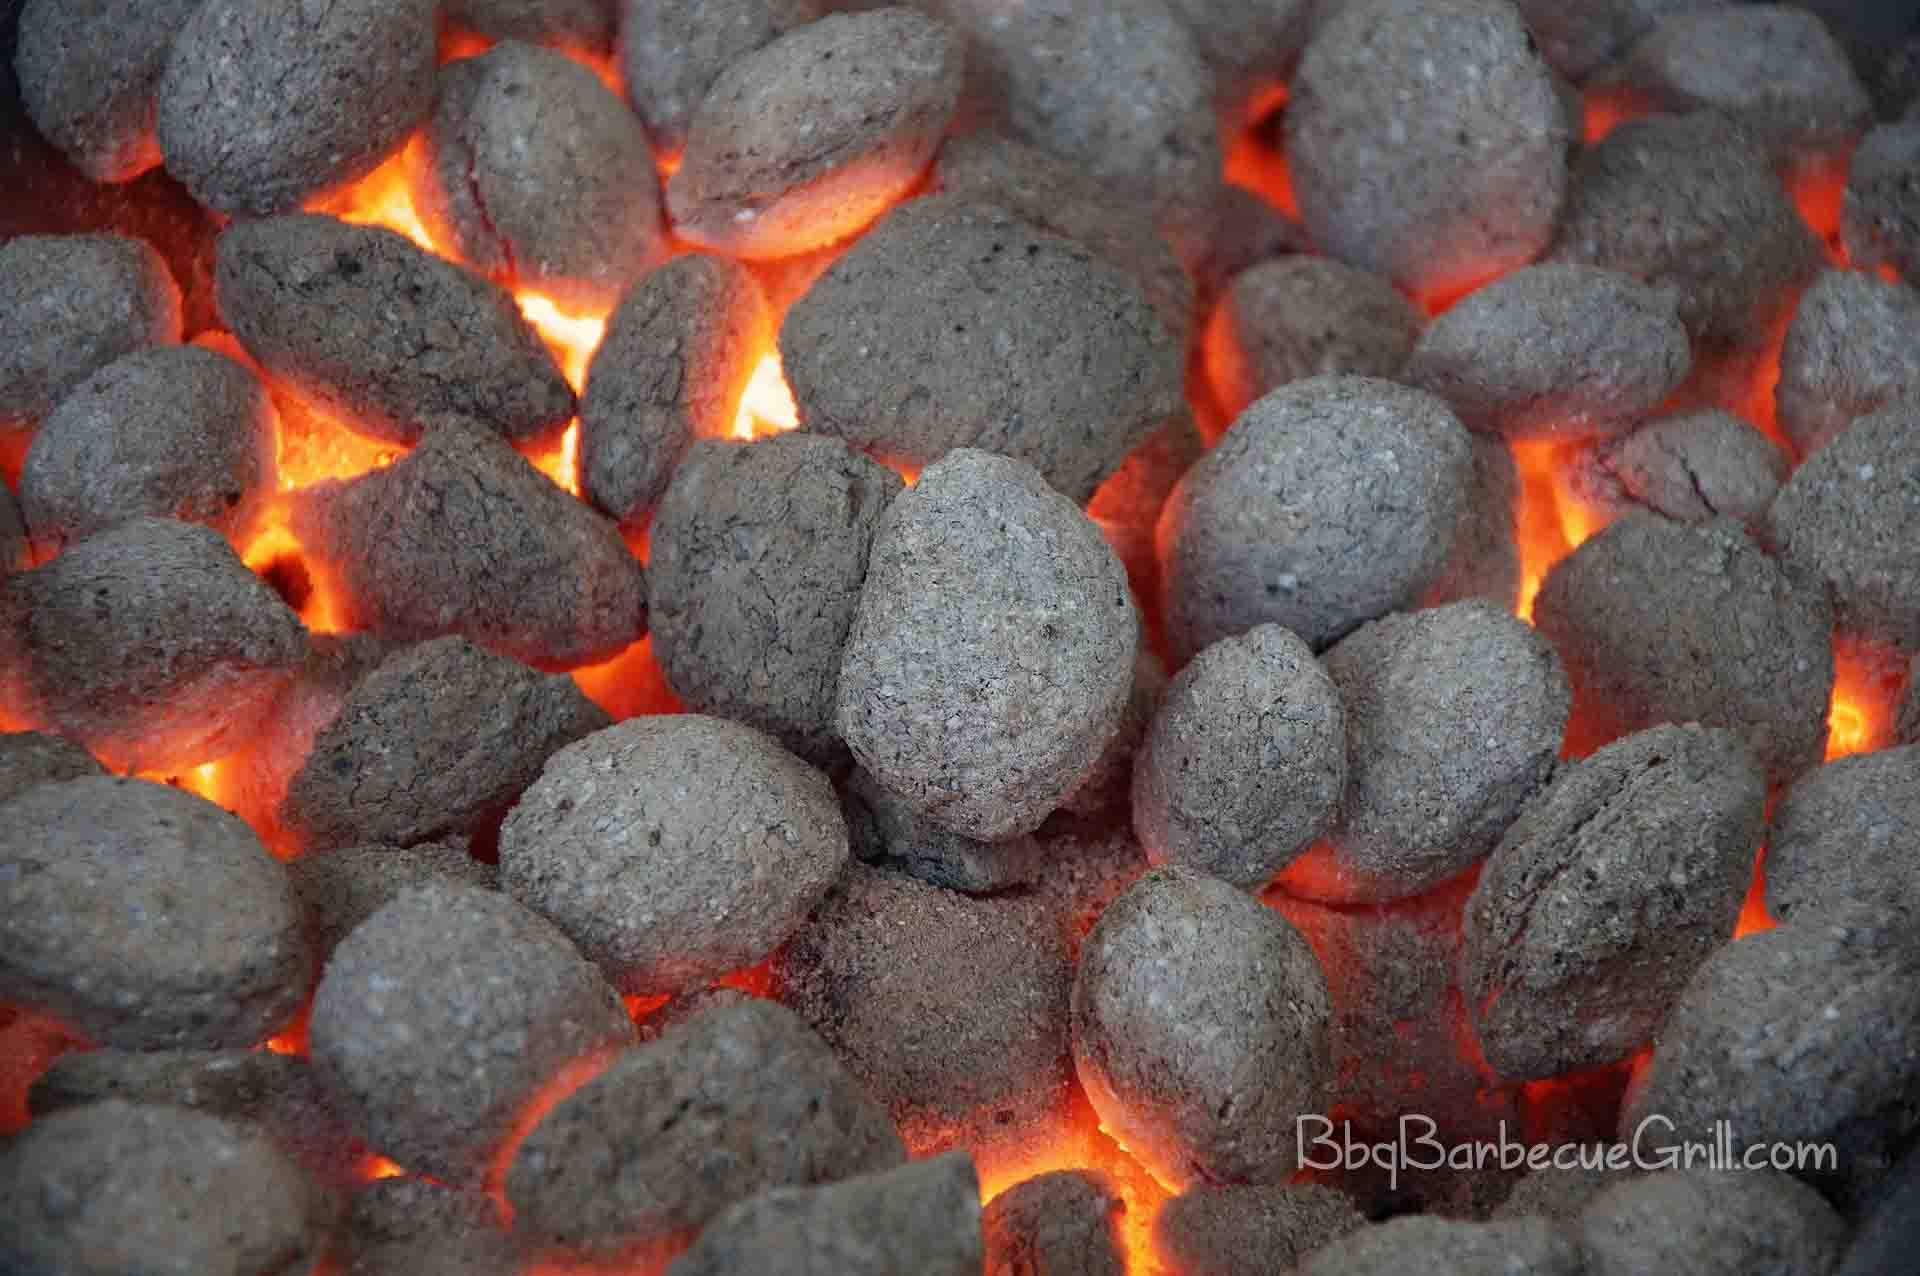 Charcoal grill vs gas grill